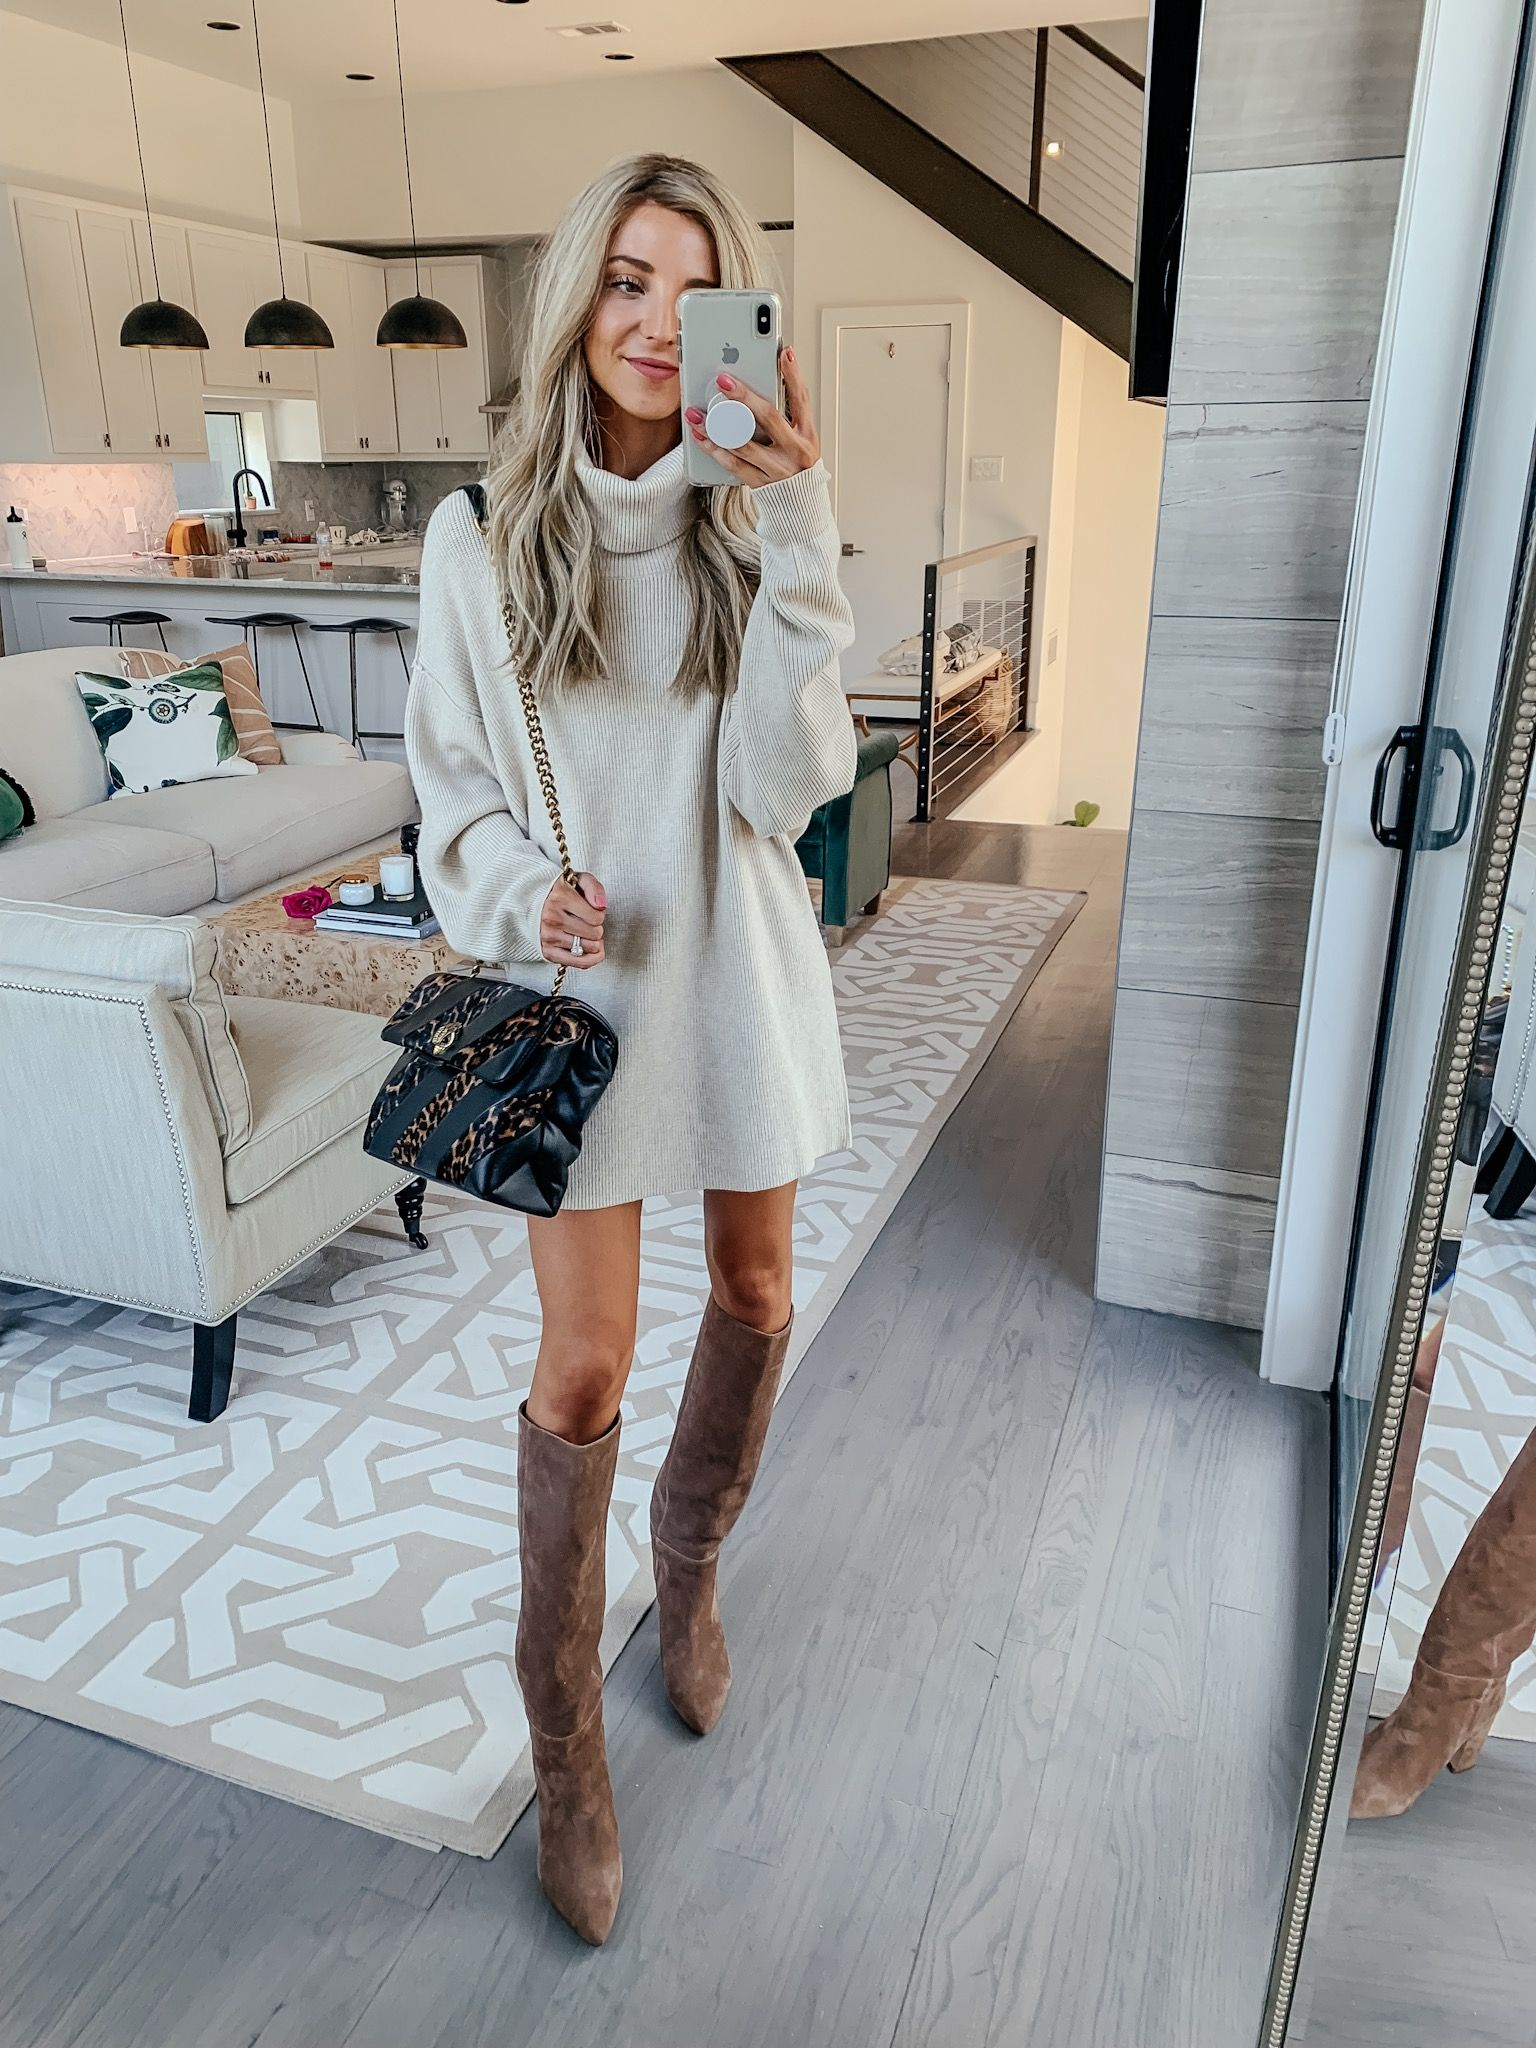 20 OUTFITS  Fall ideas in 20   outfits, autumn fashion, cute ...